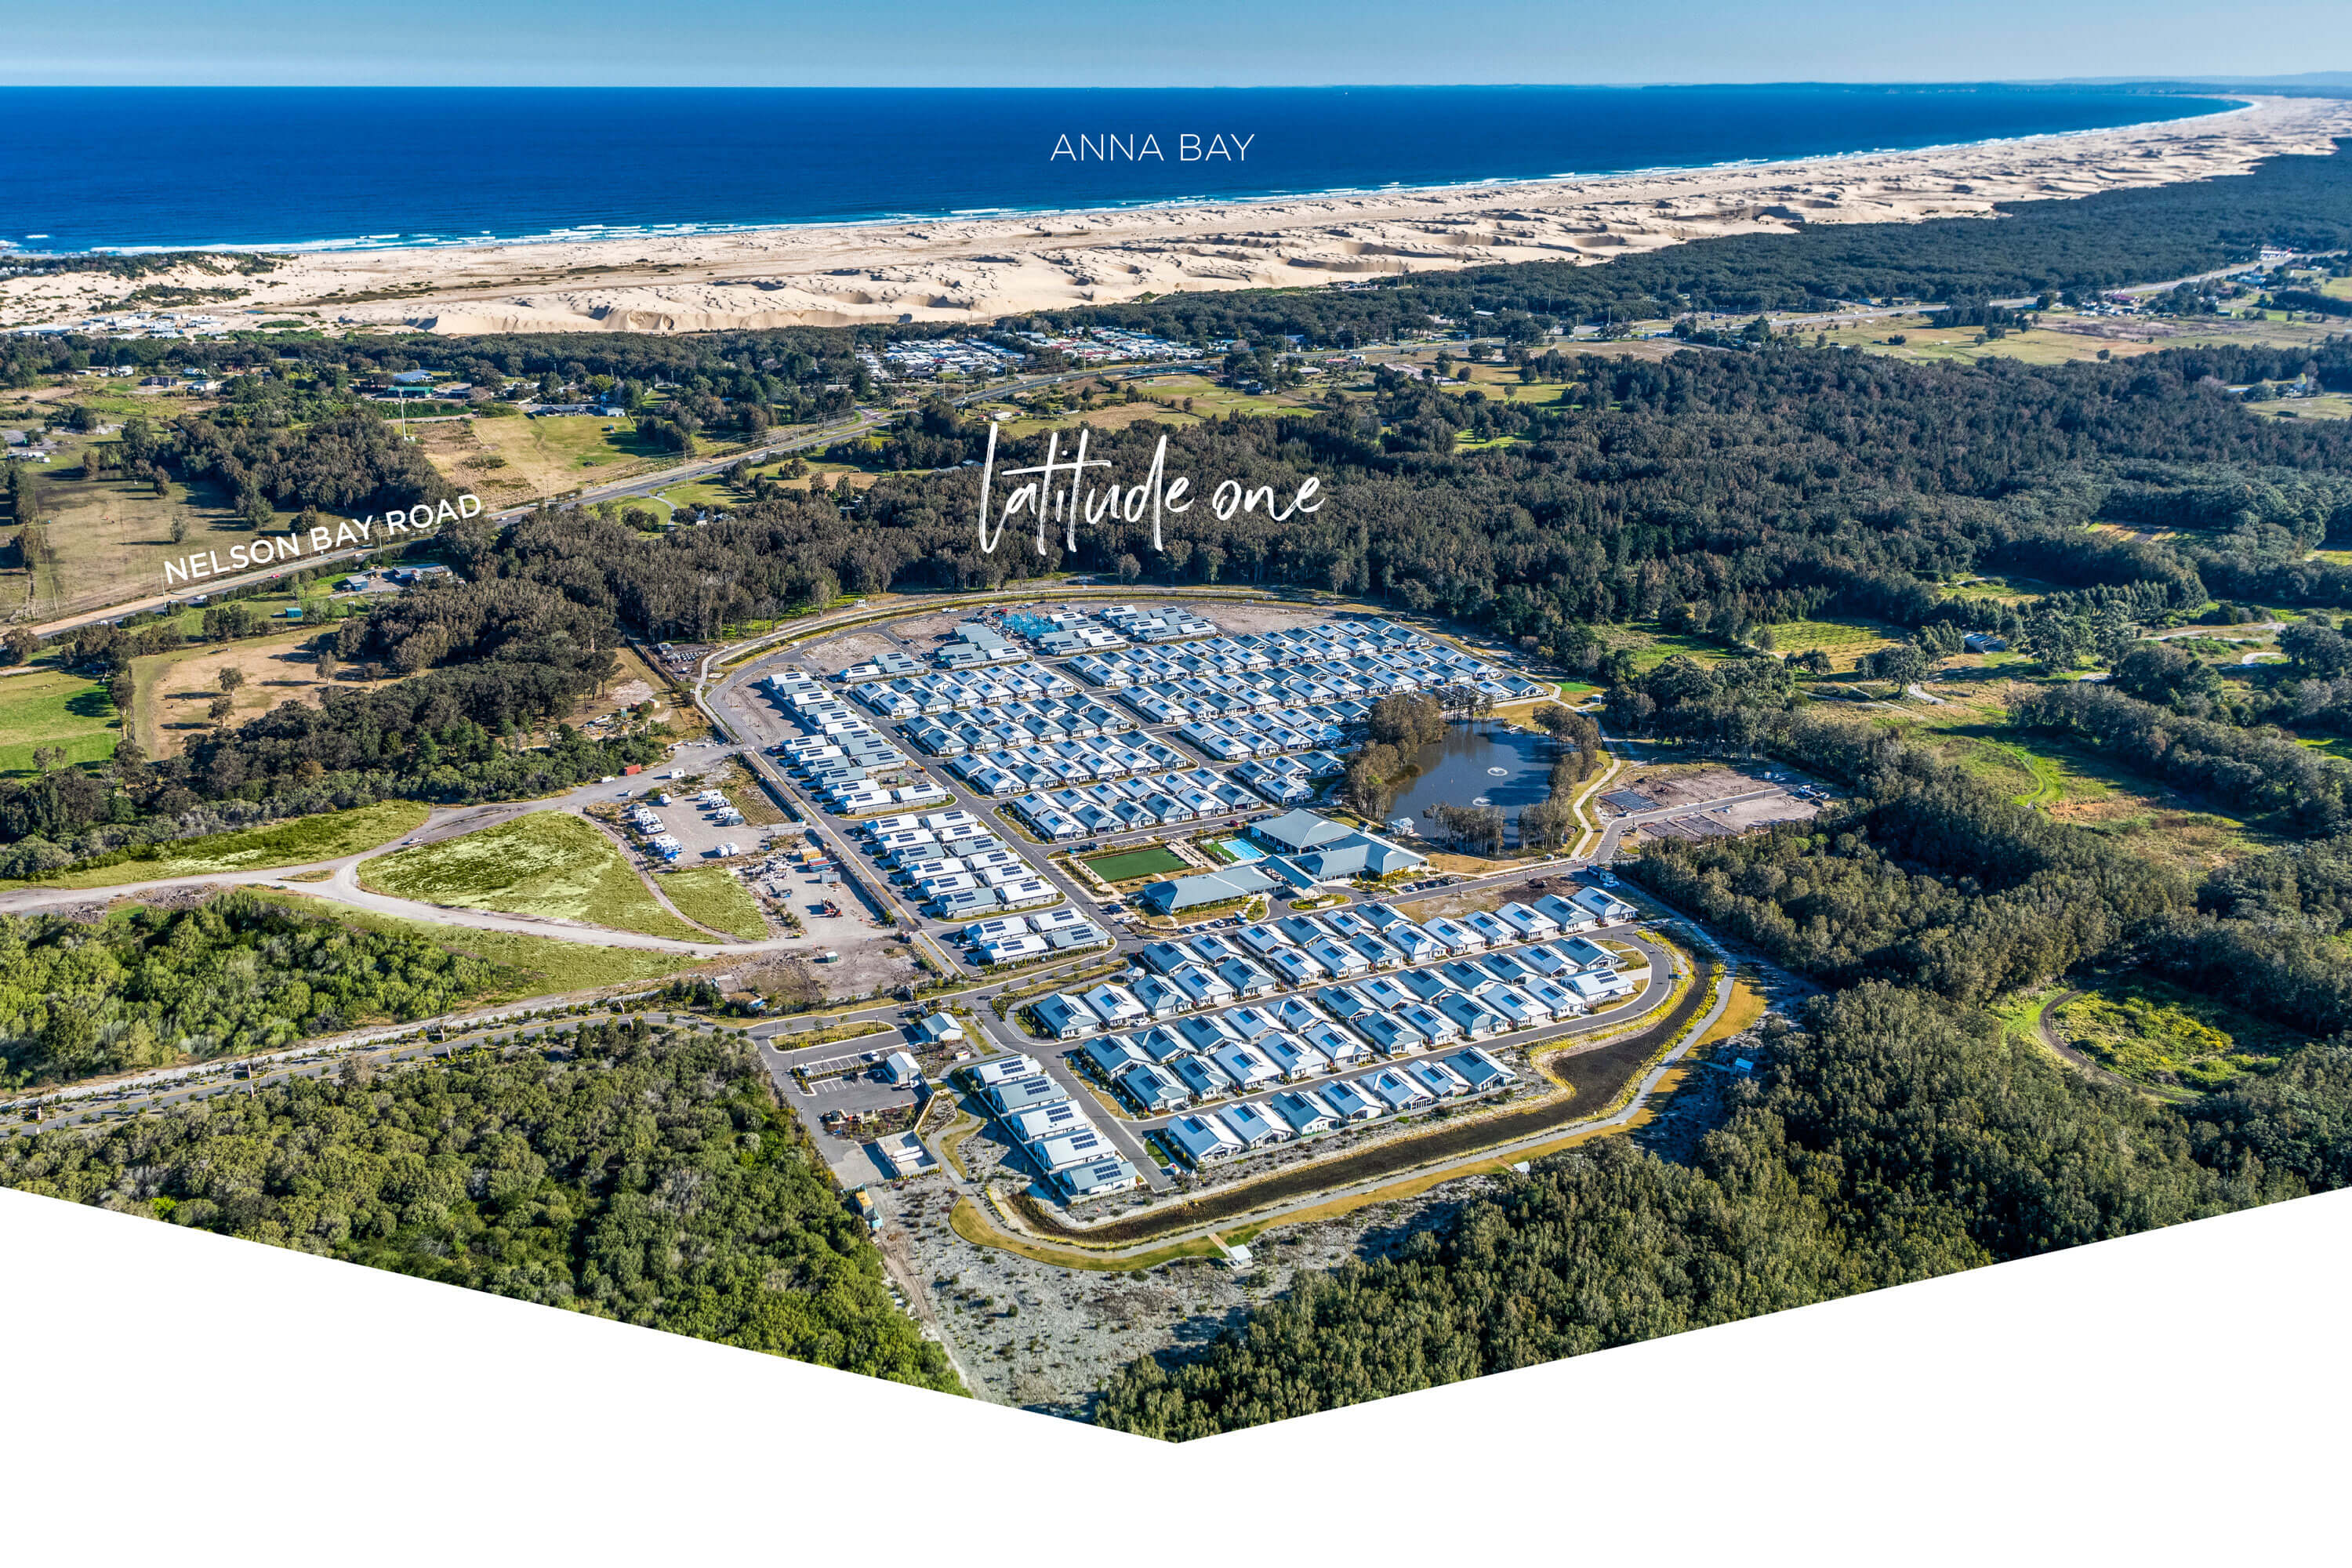 aerial of Latitude One in Port Stephens close to Anna Bay beach